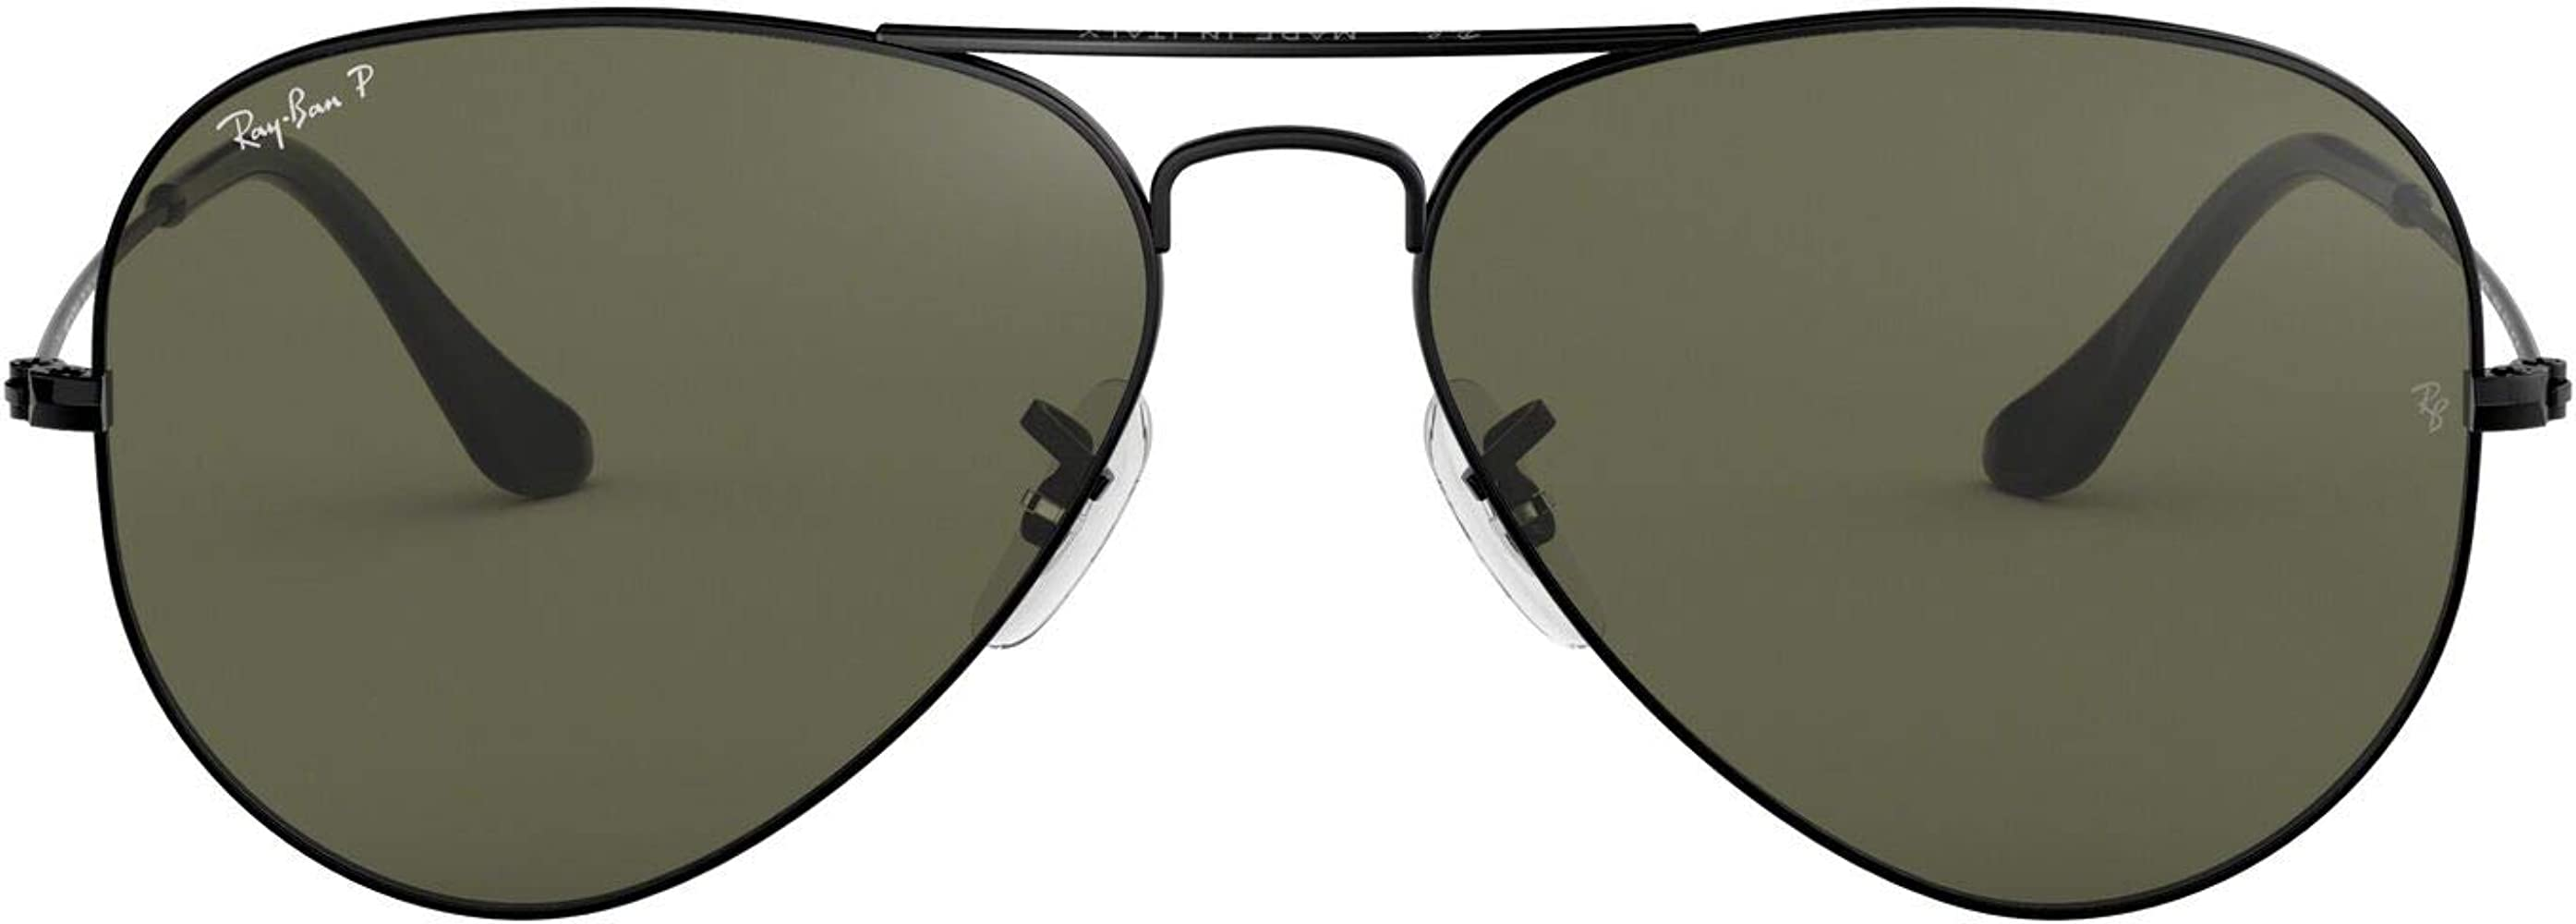 Ray-Ban Aviator Gafas de sol, Black, 55 para Hombre: Amazon ...